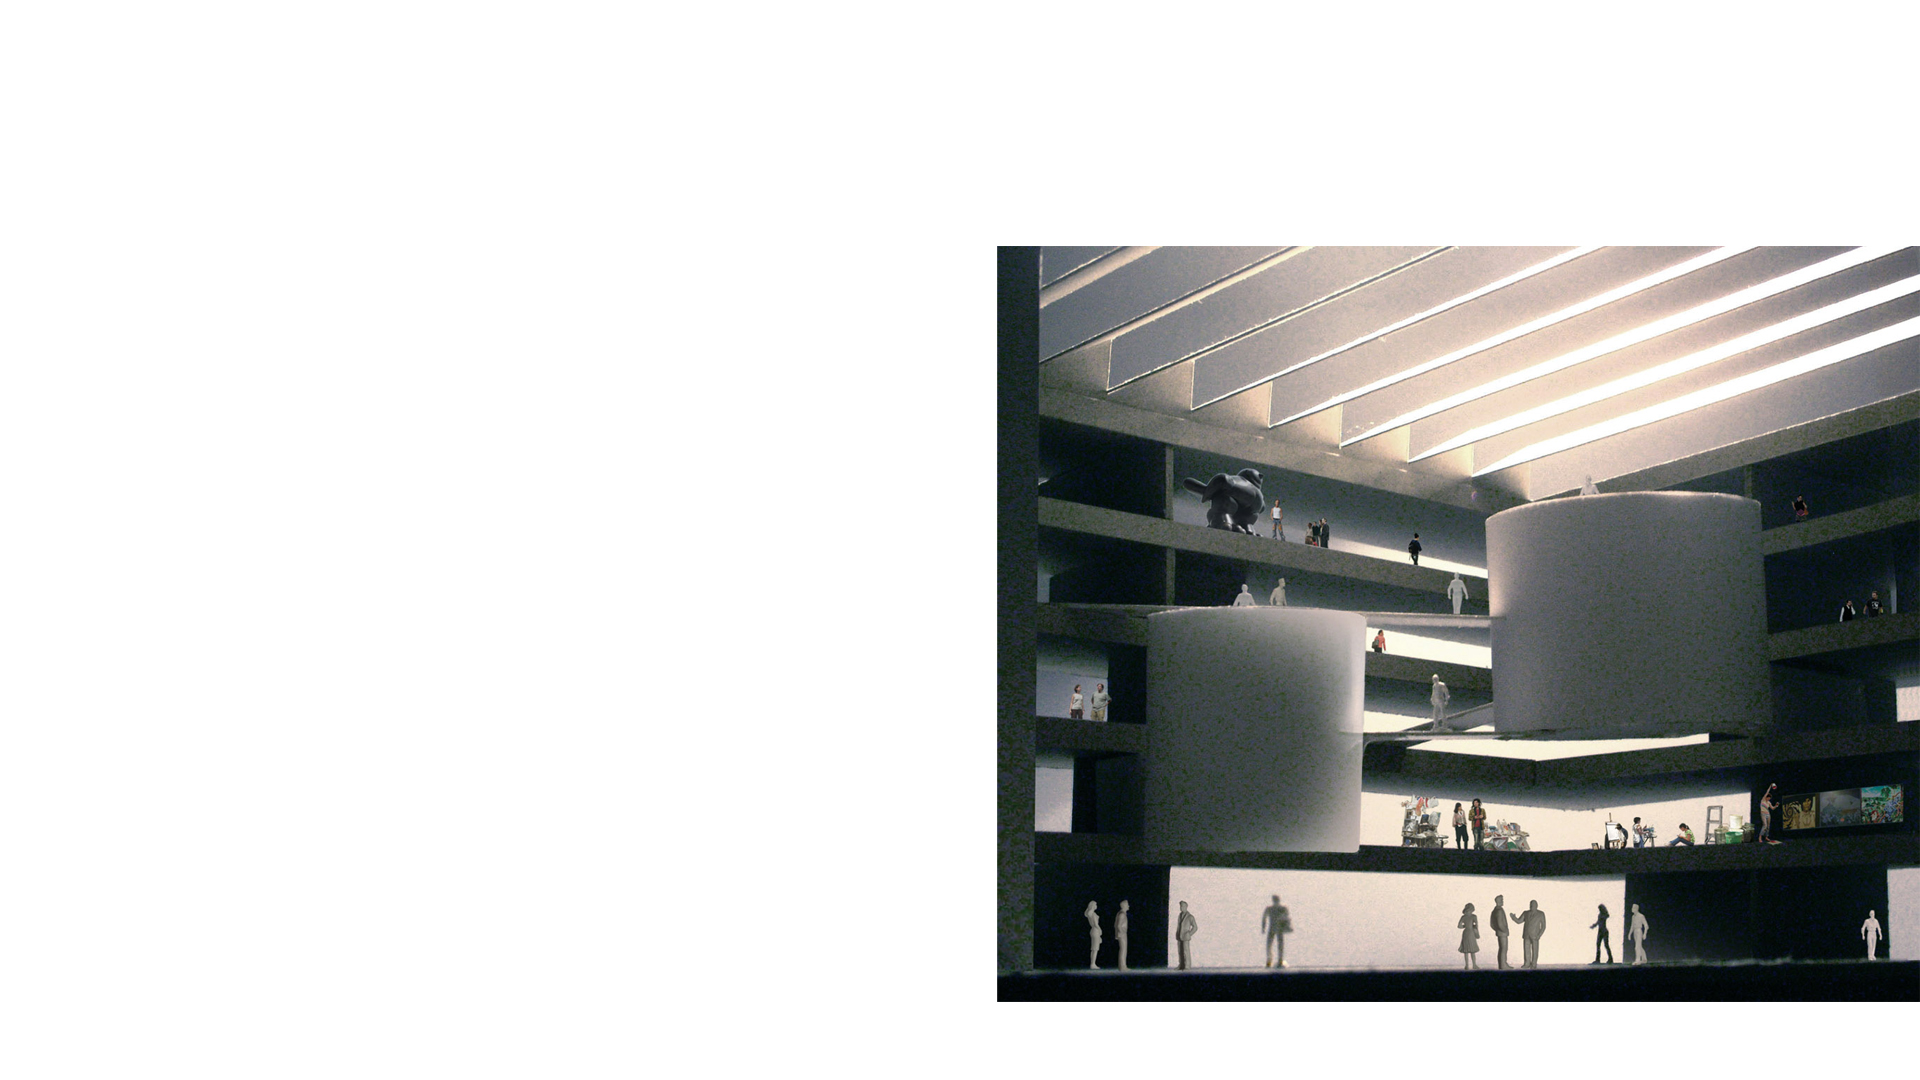 Physical model of the interior of proposed Sculpture Building for the Royal College of Art at the Battersea Campus. Design by Keith Williams Architects